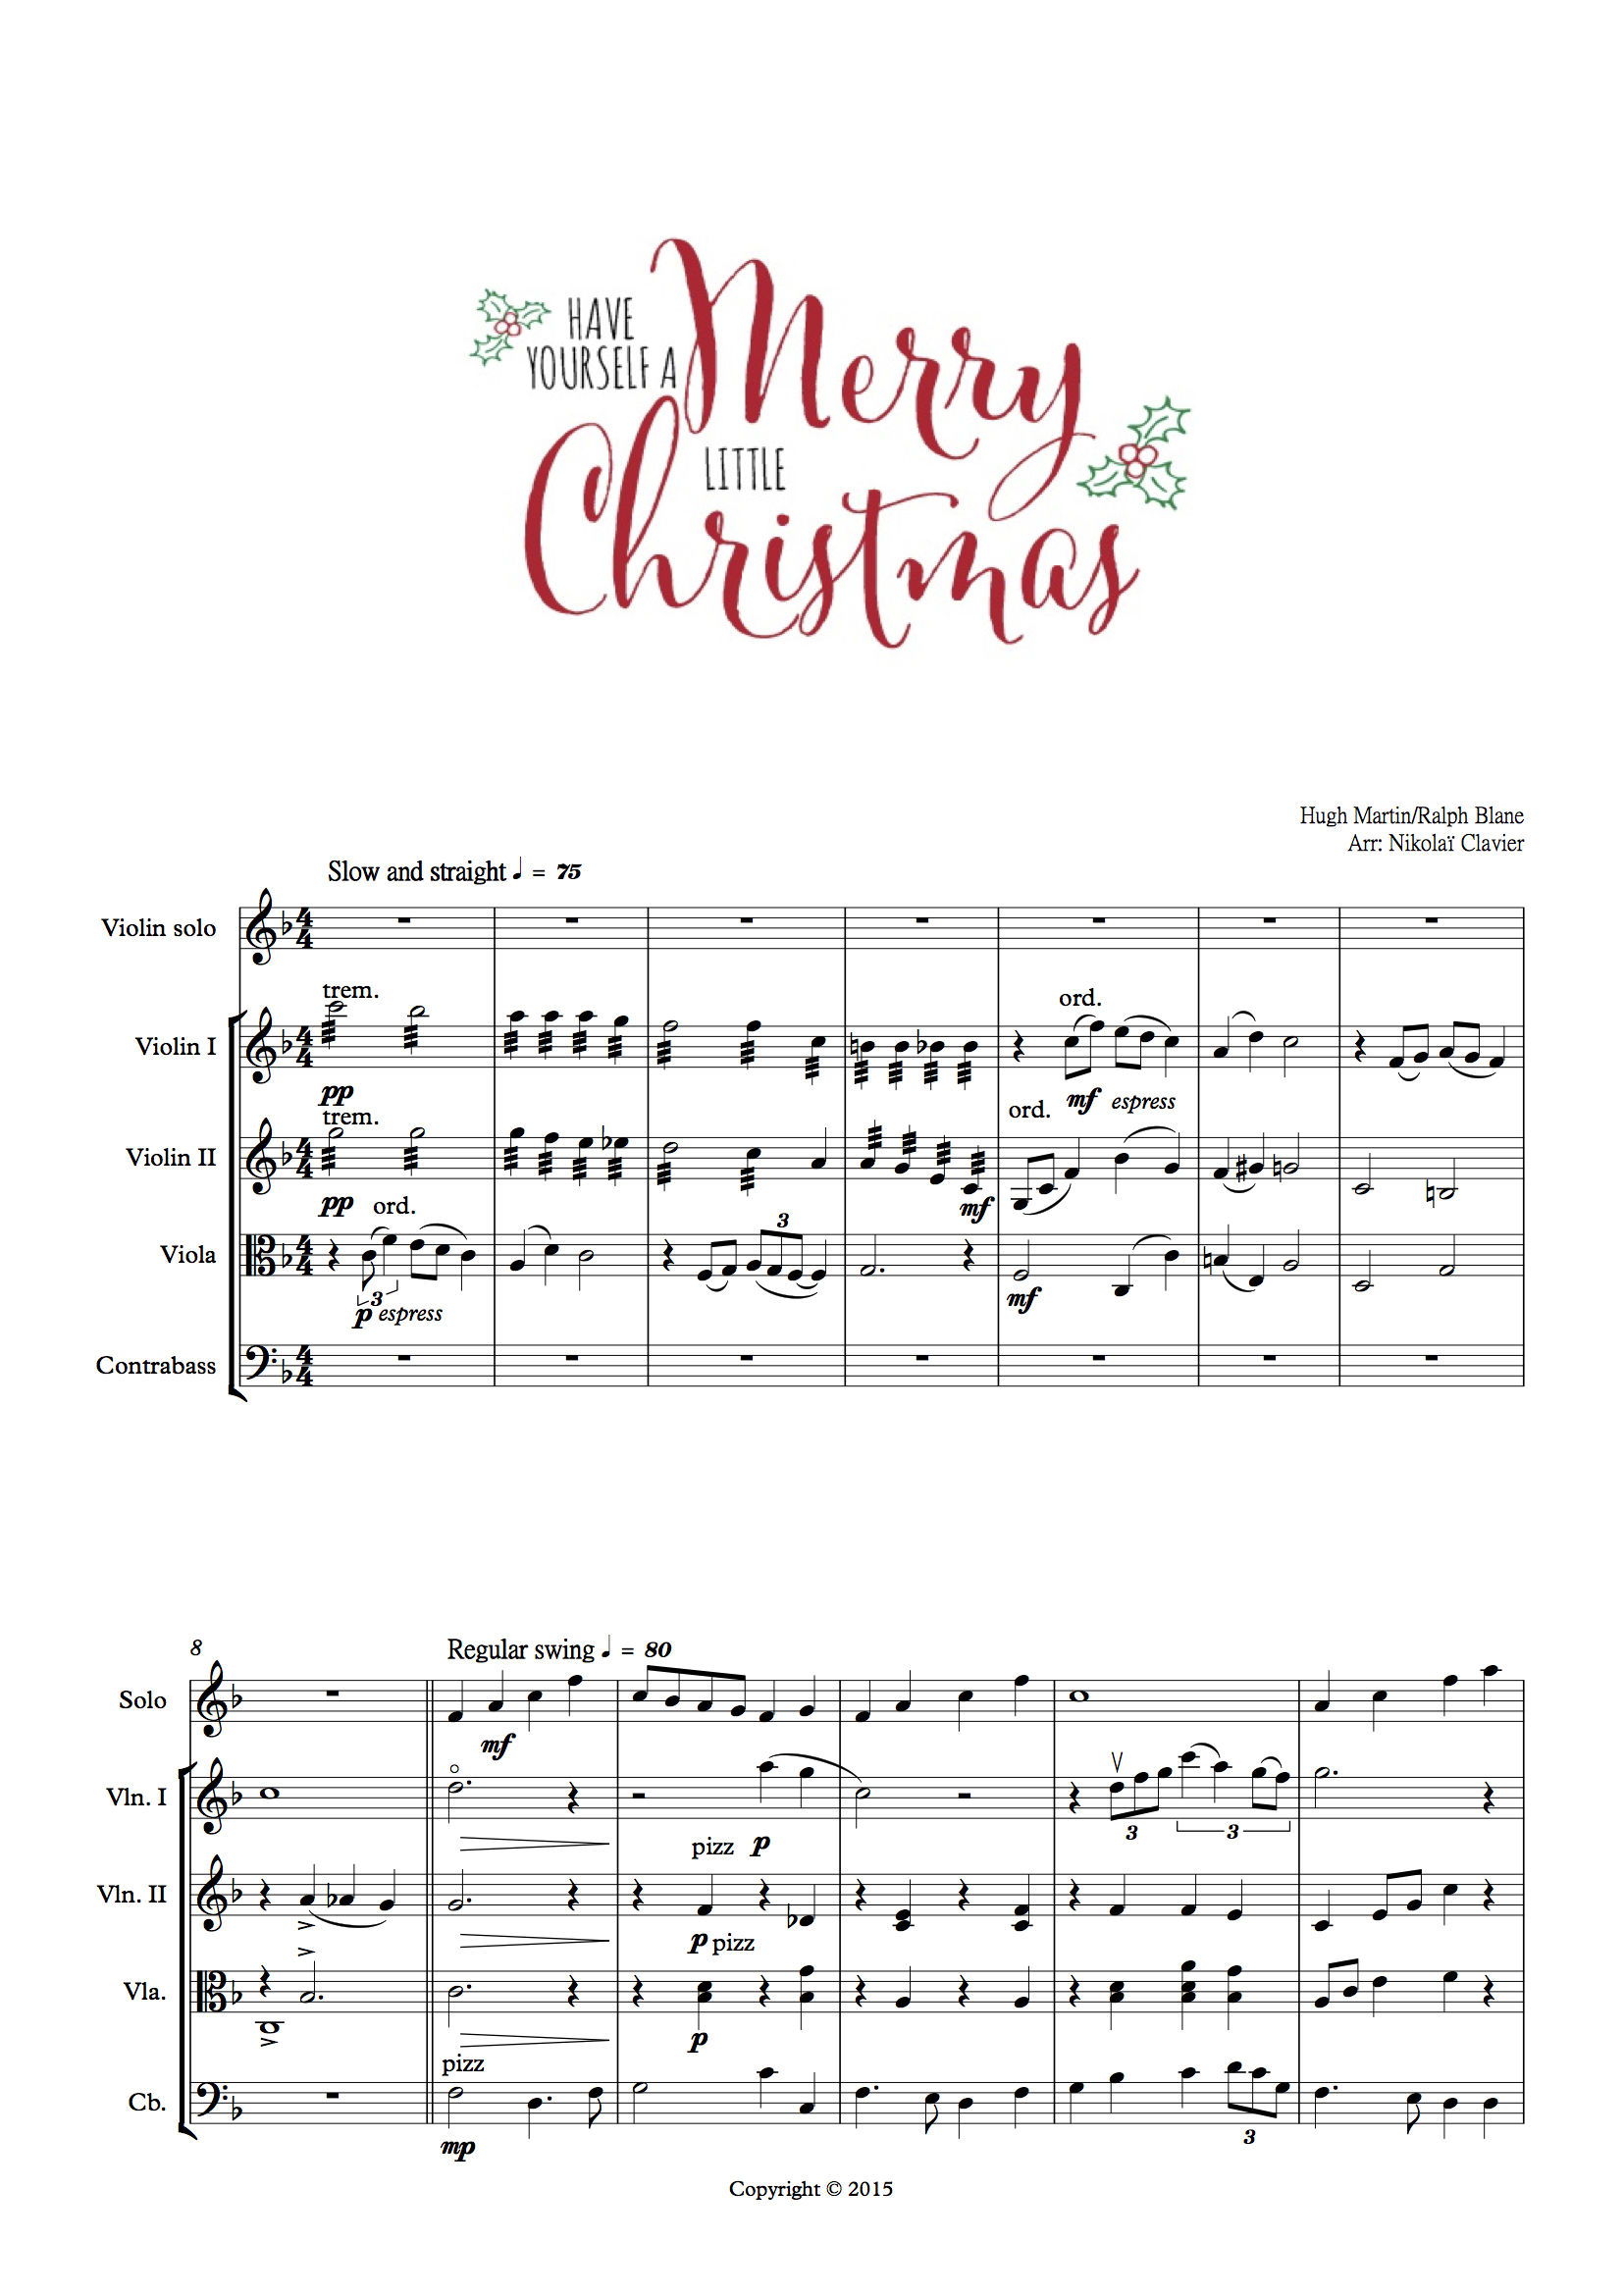 Have Yourself a Meryy little Christmas - score and Parts (dragged)